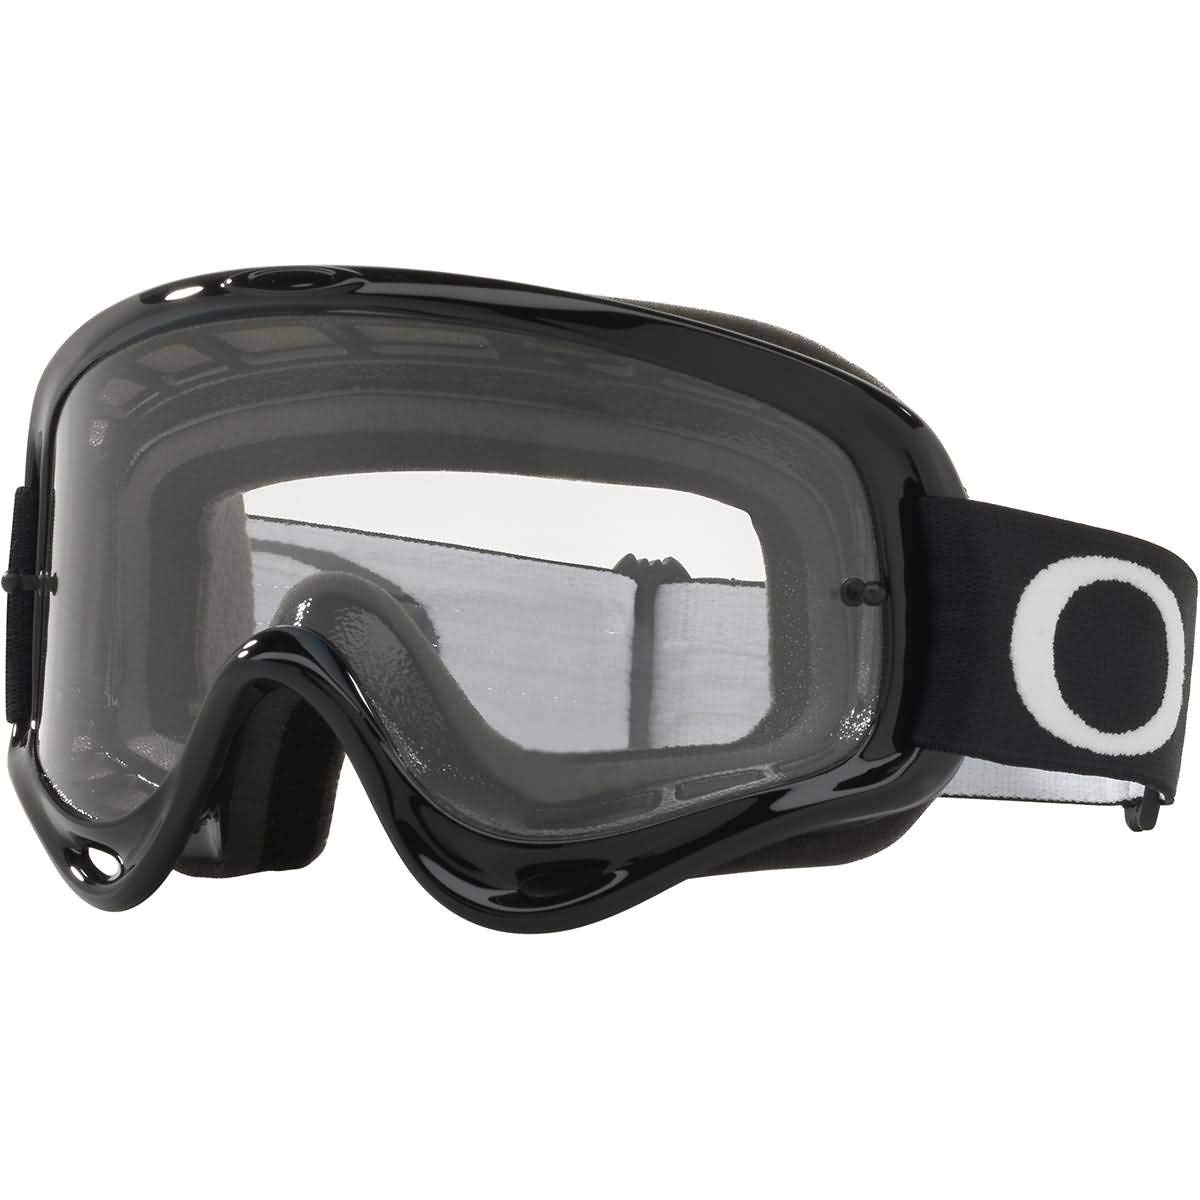 Oakley O Frame MX Adult Off-Road Motorcycle Goggles - Jet Black/Clear by Oakley